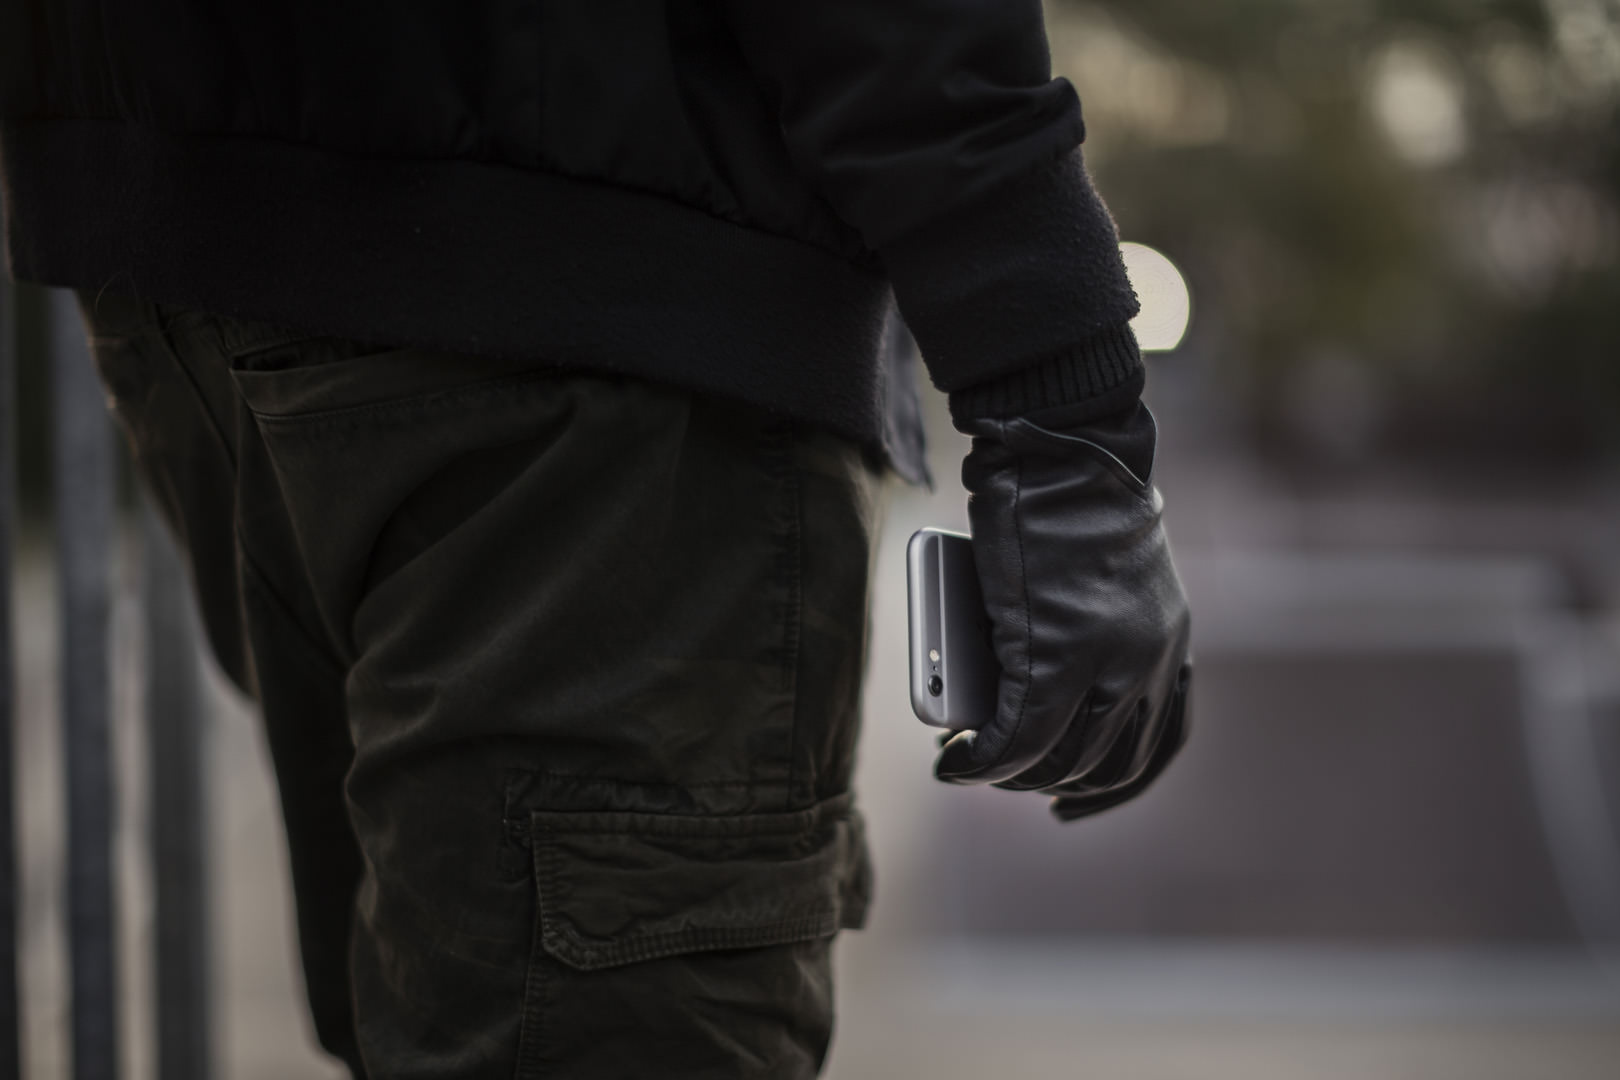 NapoGloves_winter_campaign_2015_18